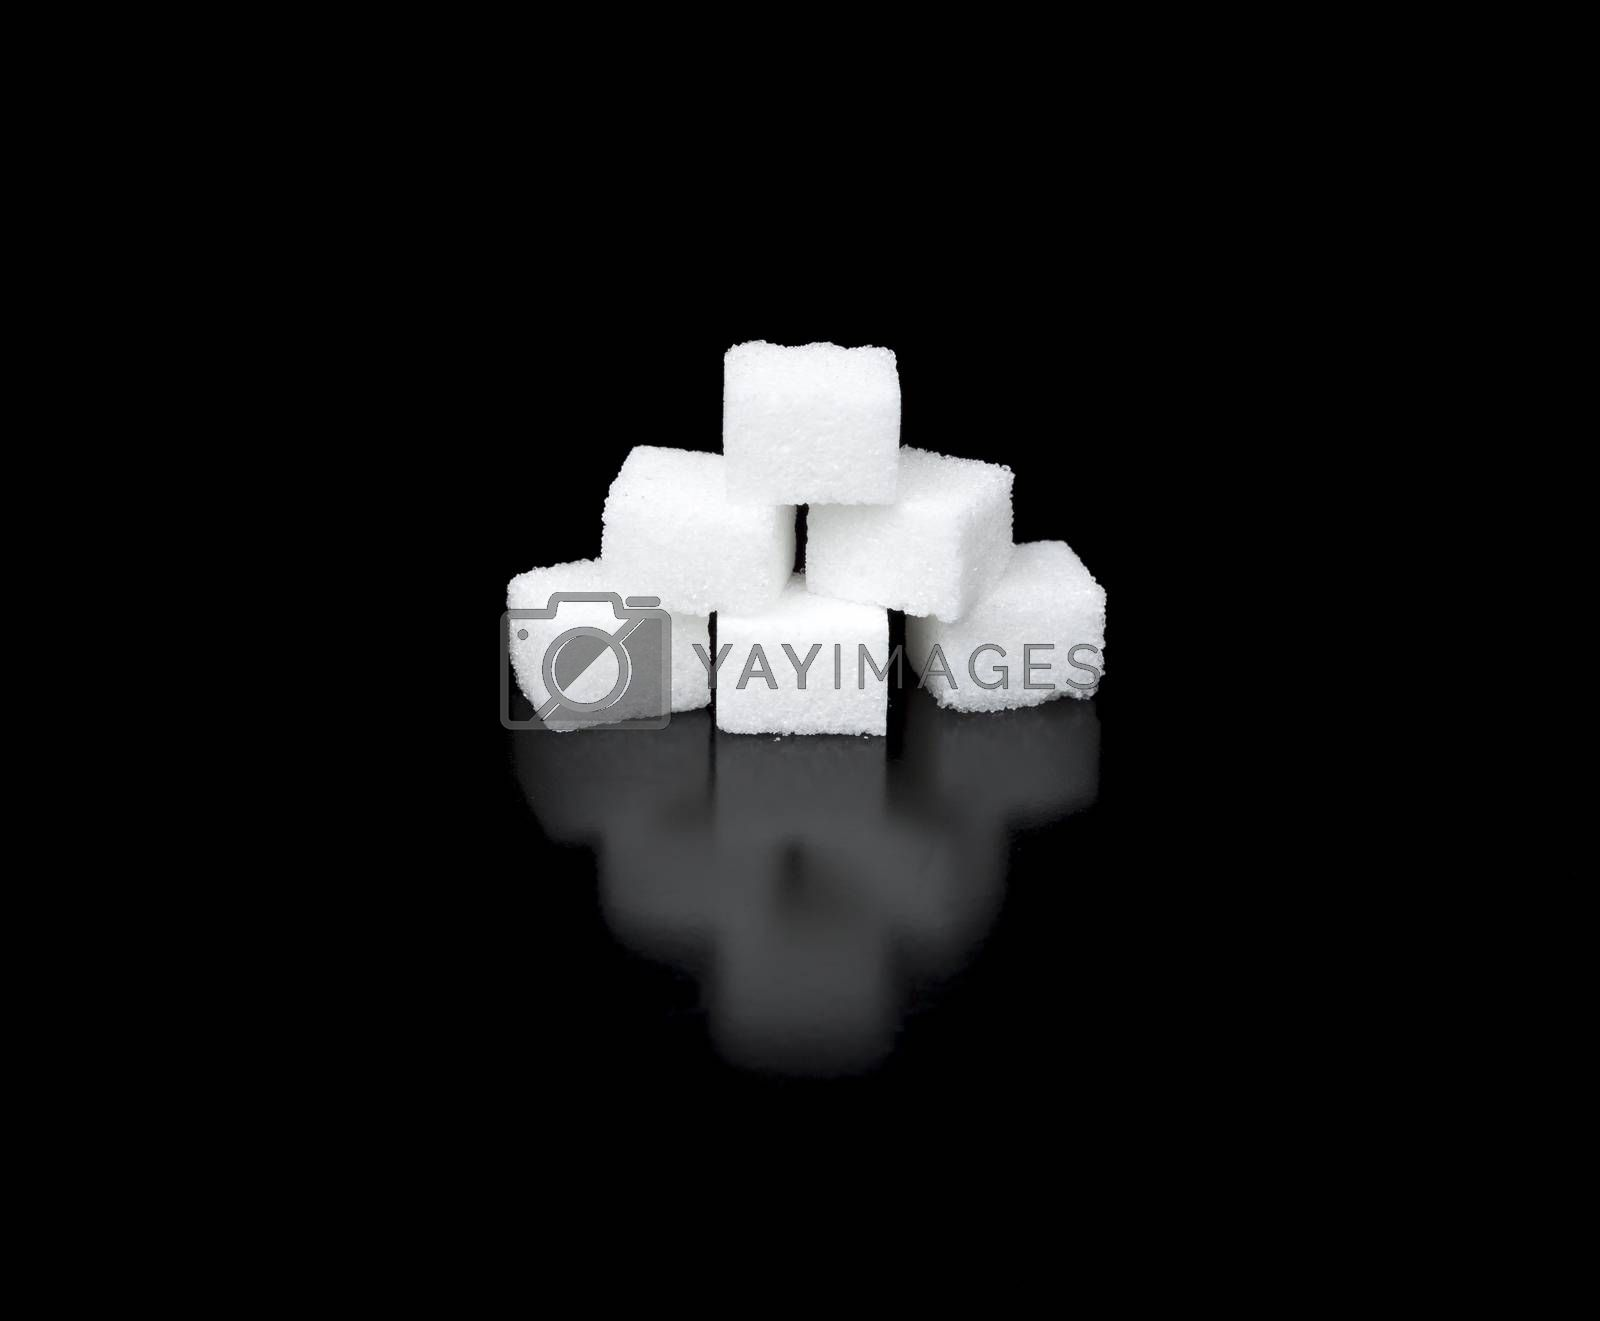 Sugar Cubes in a Pyramid with completely black background and reflection.